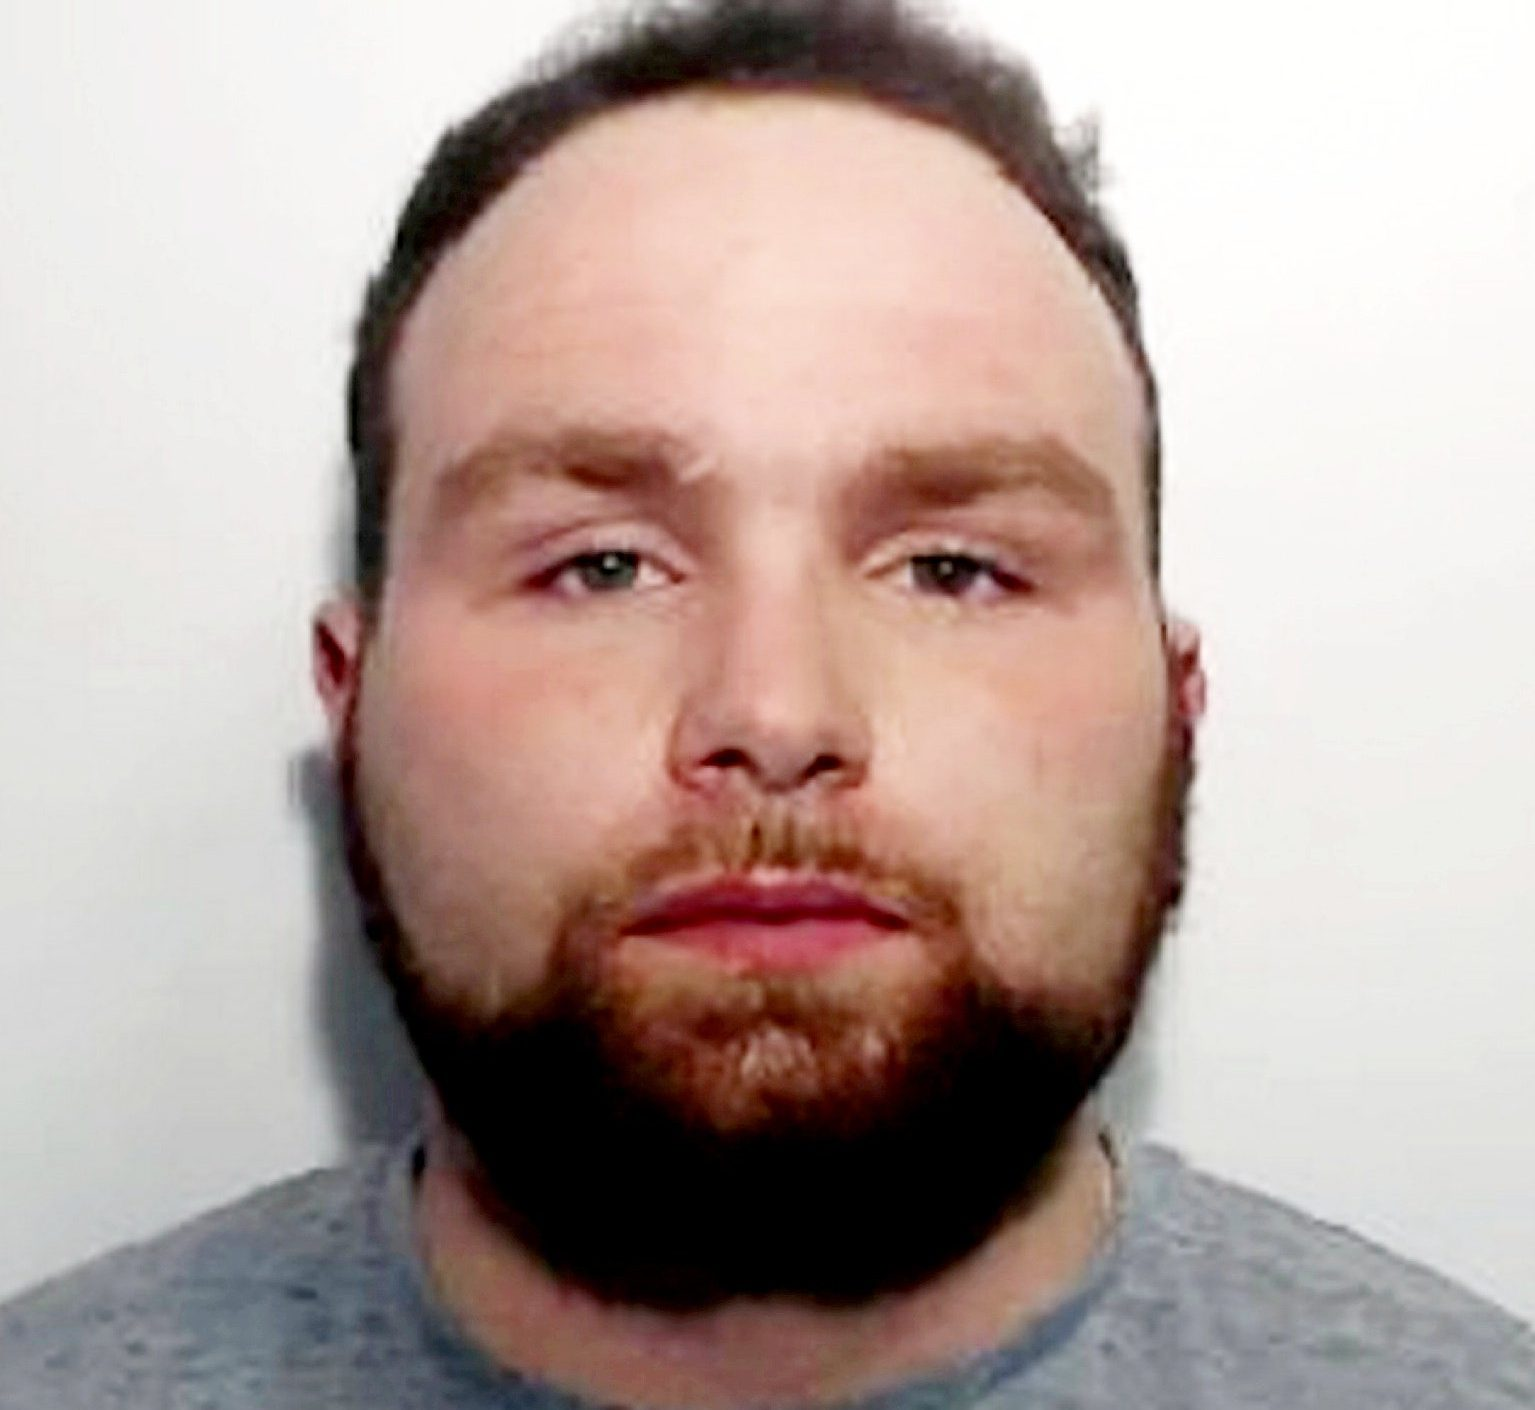 Niall Briercliffe. A jealous man who attacked his ex-girlfriend, leaving her with nails ripped from her fingers, has been jailed for 30 months. See ROSS PARRY story RPYVIOLENT. Niall Briercliffe locked his former partner in his house while he checked her phone for proof she was in another relationship. Bolton Crown Court heard how jealous Niall Briercliffe, who was holding a knife, threatened to kill her if he came across evidence. The incident was part of an attack on his ex partner during which he kicked her to the ground, grabbed her by the hair and threatened to snub out a lit cigarette on her neck.